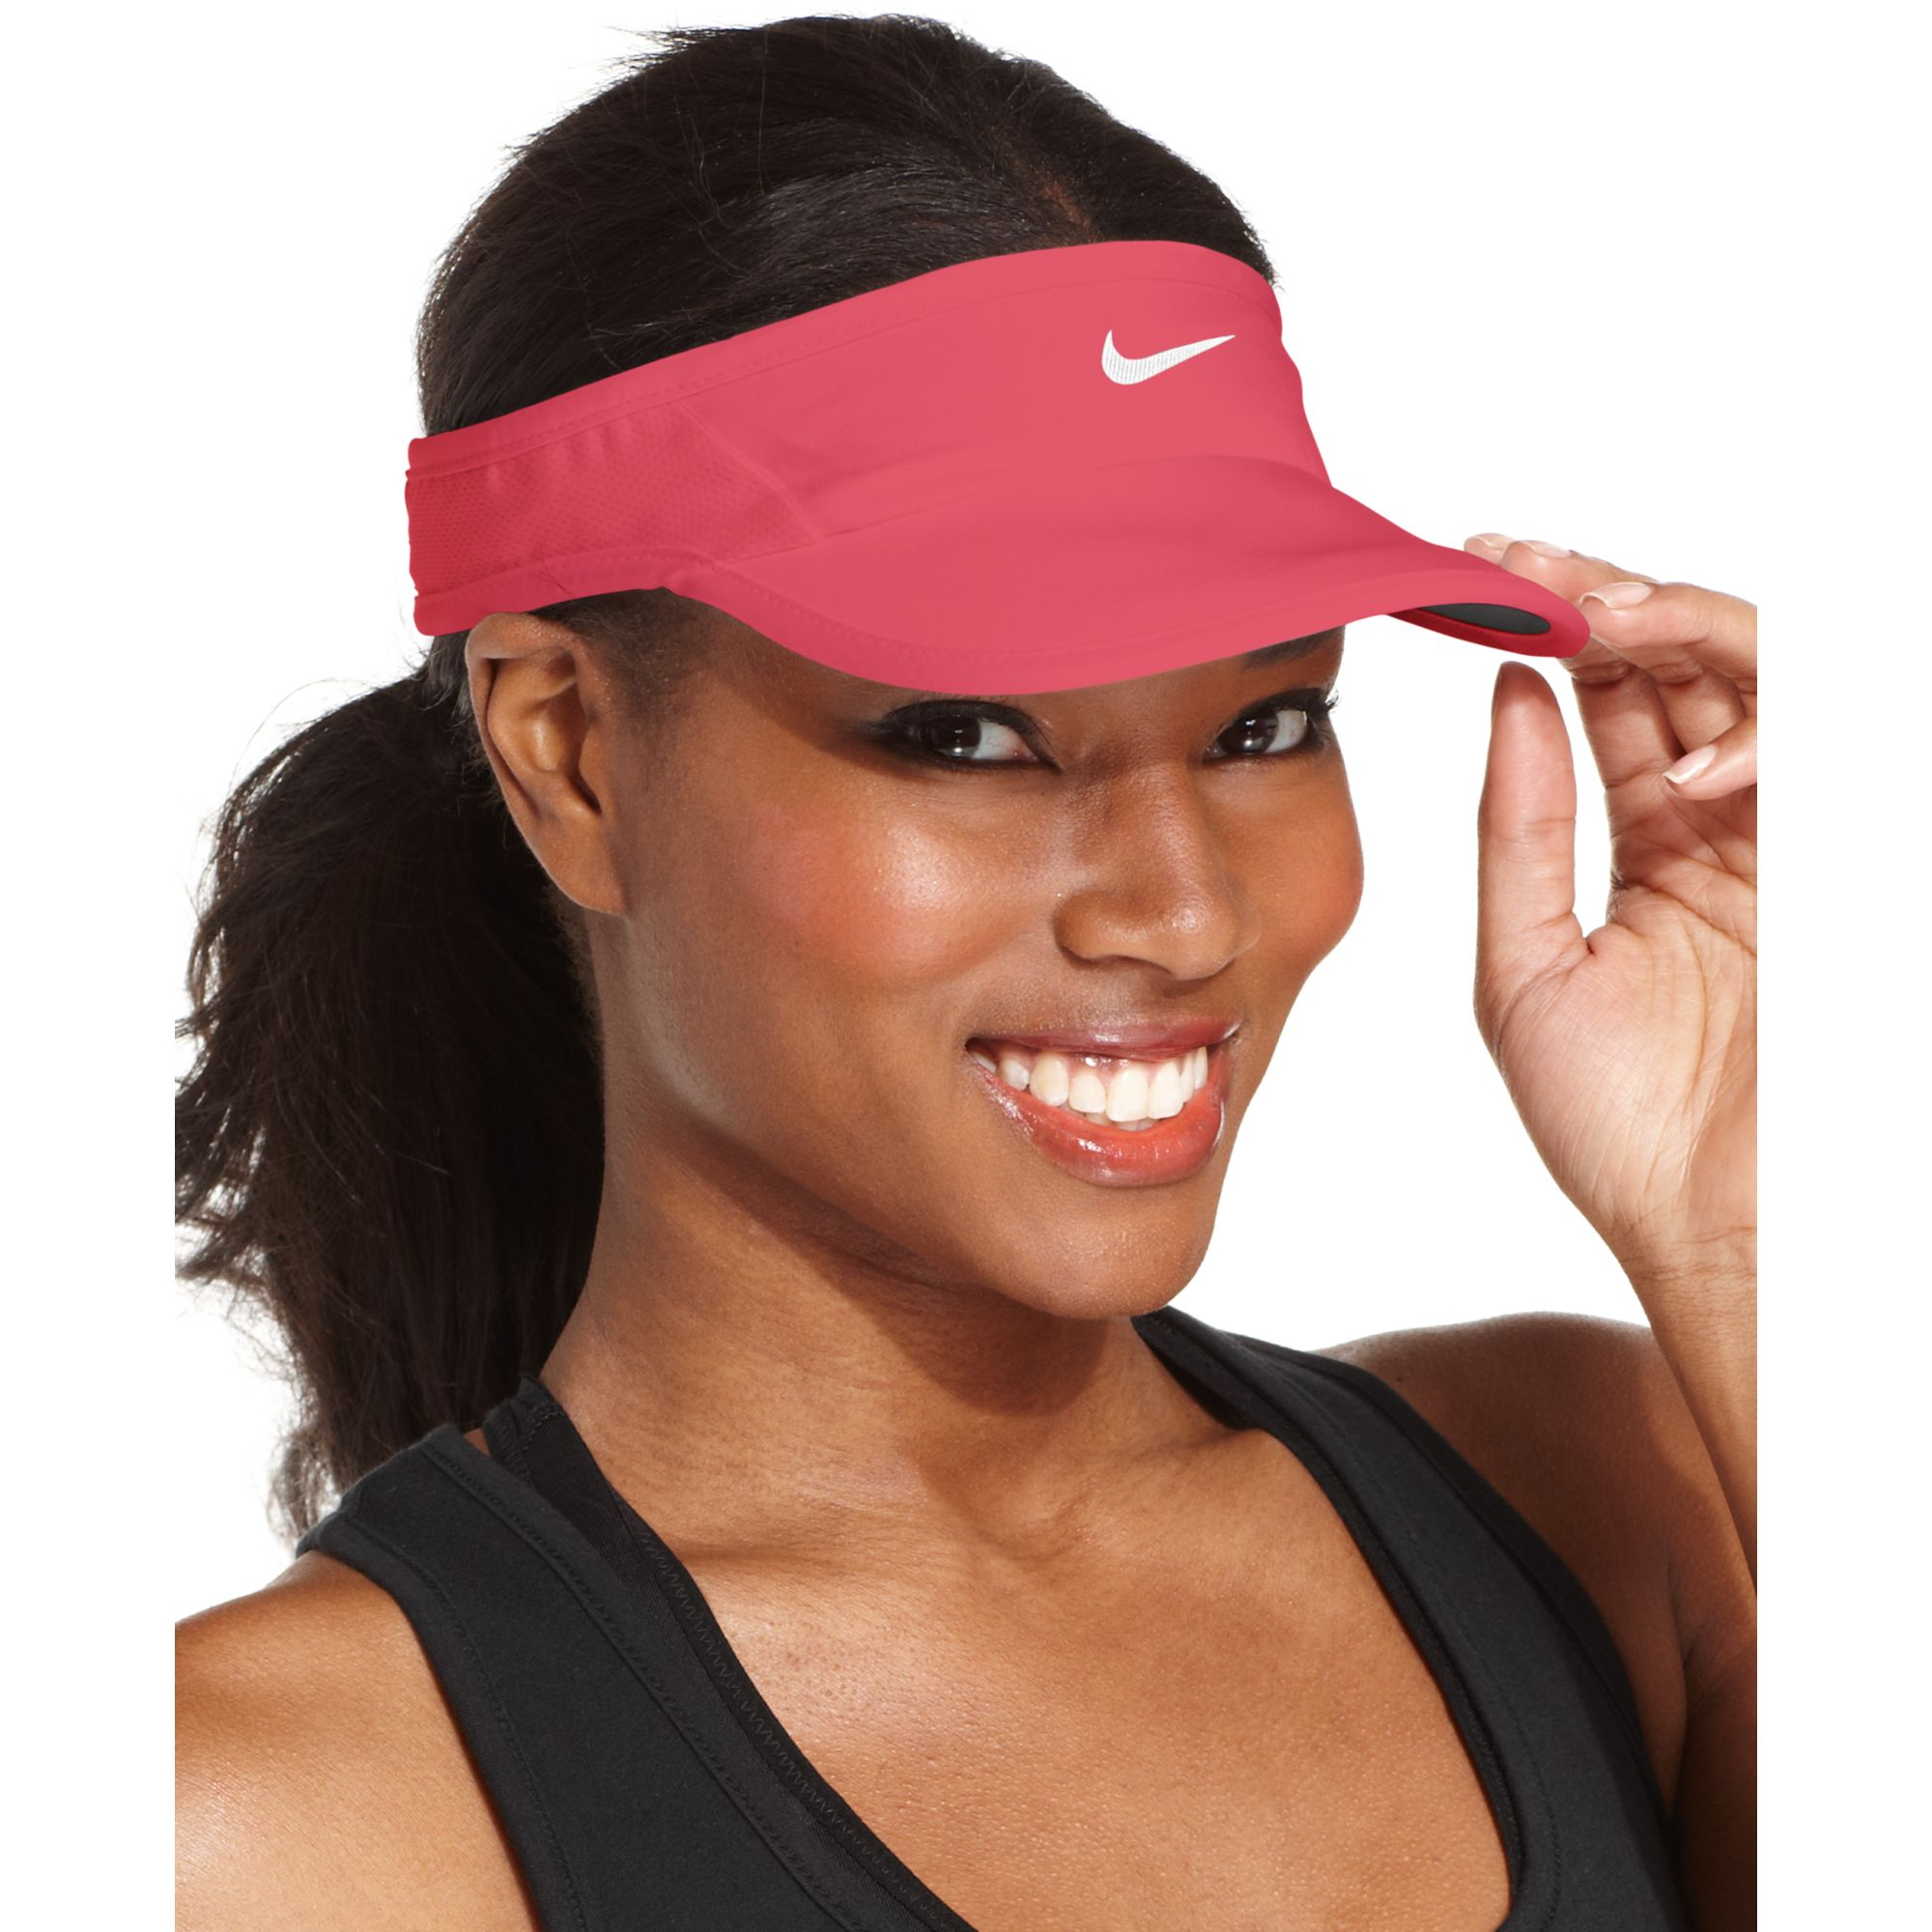 Lyst - Nike Featherlight 20 Drifit Visor in Pink 4055462ad43